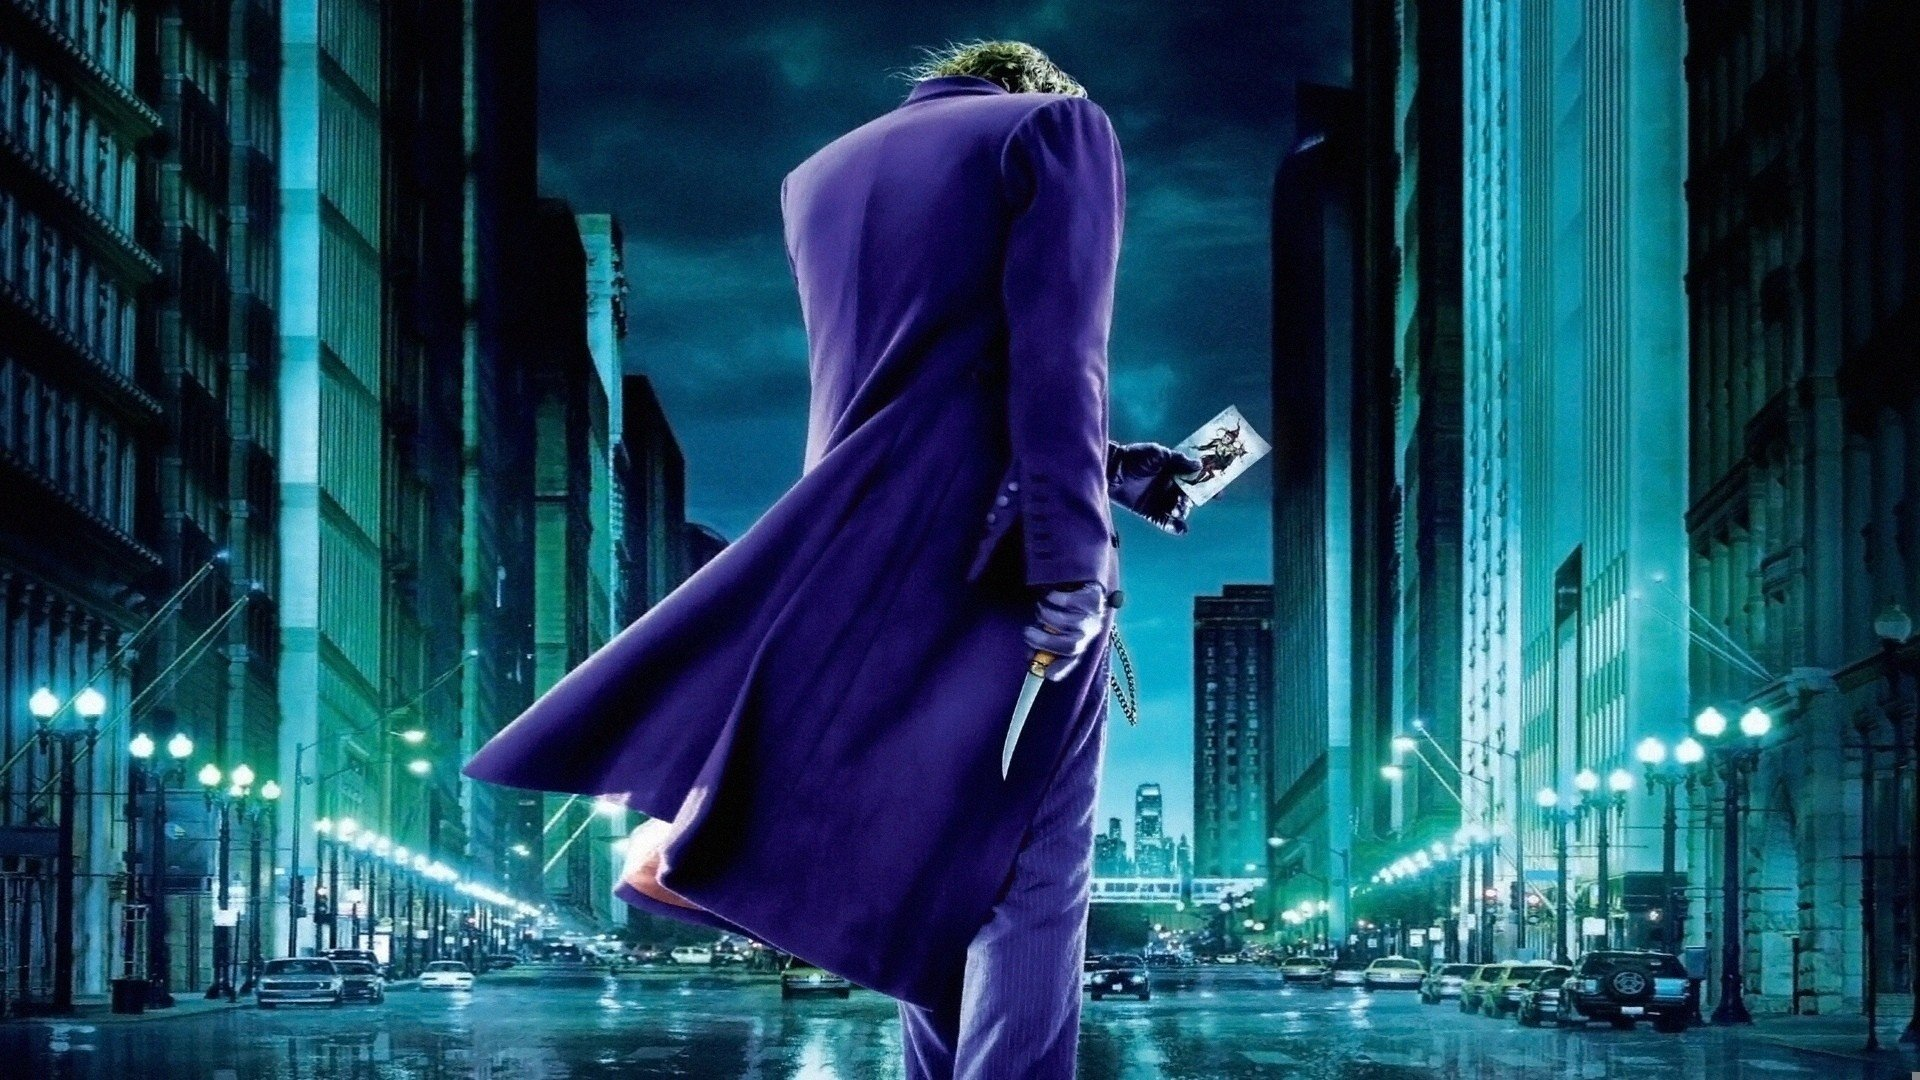 The Dark Knight Joker Papel De Parede Hd Plano De Fundo